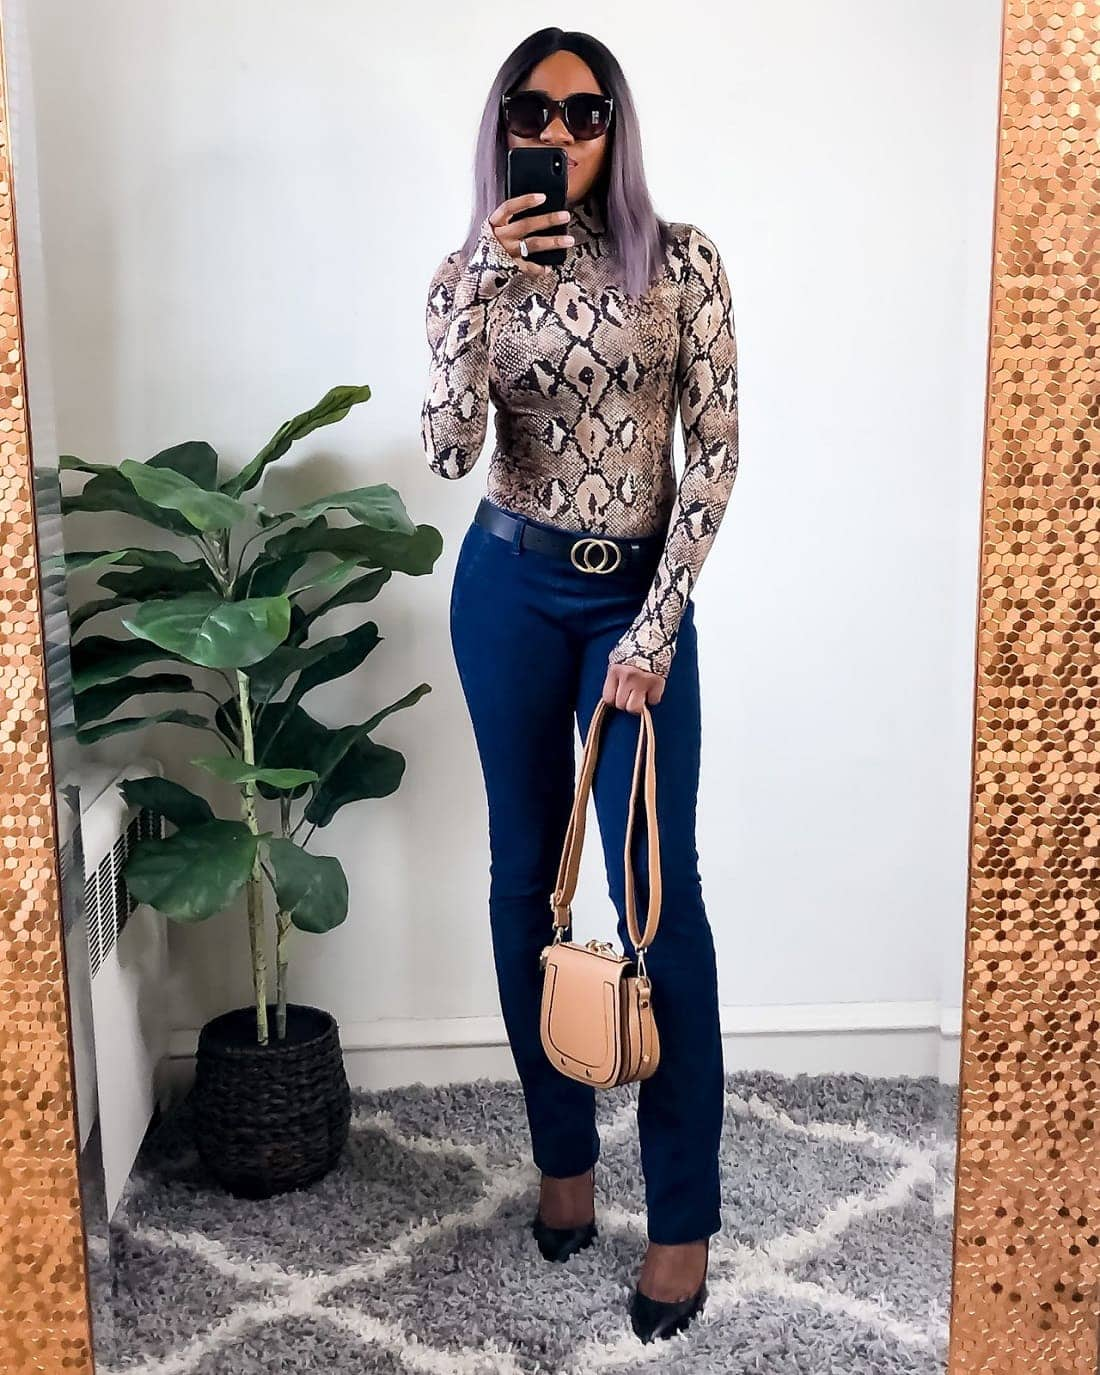 Looking stunning in my Betabrand jeans with a Leopard print bodysuit